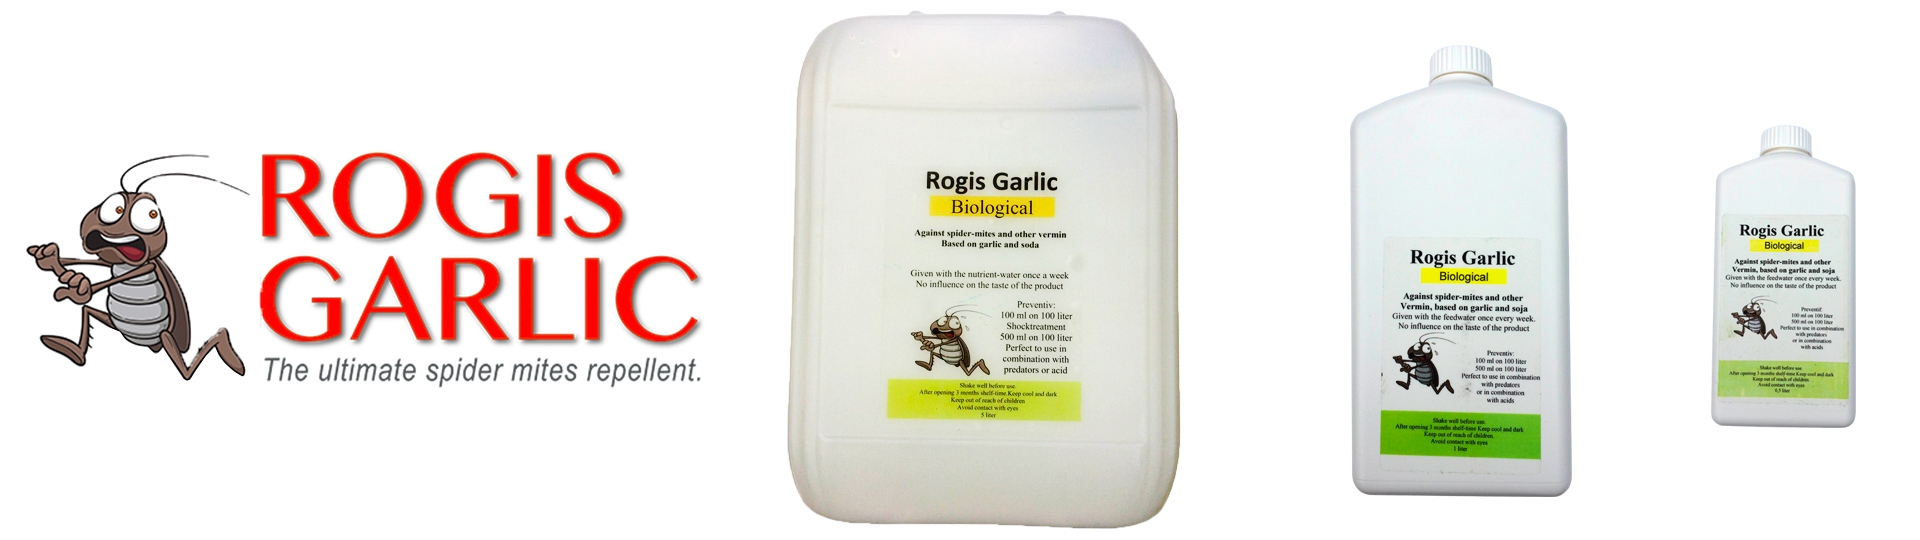 Rogis Garlic